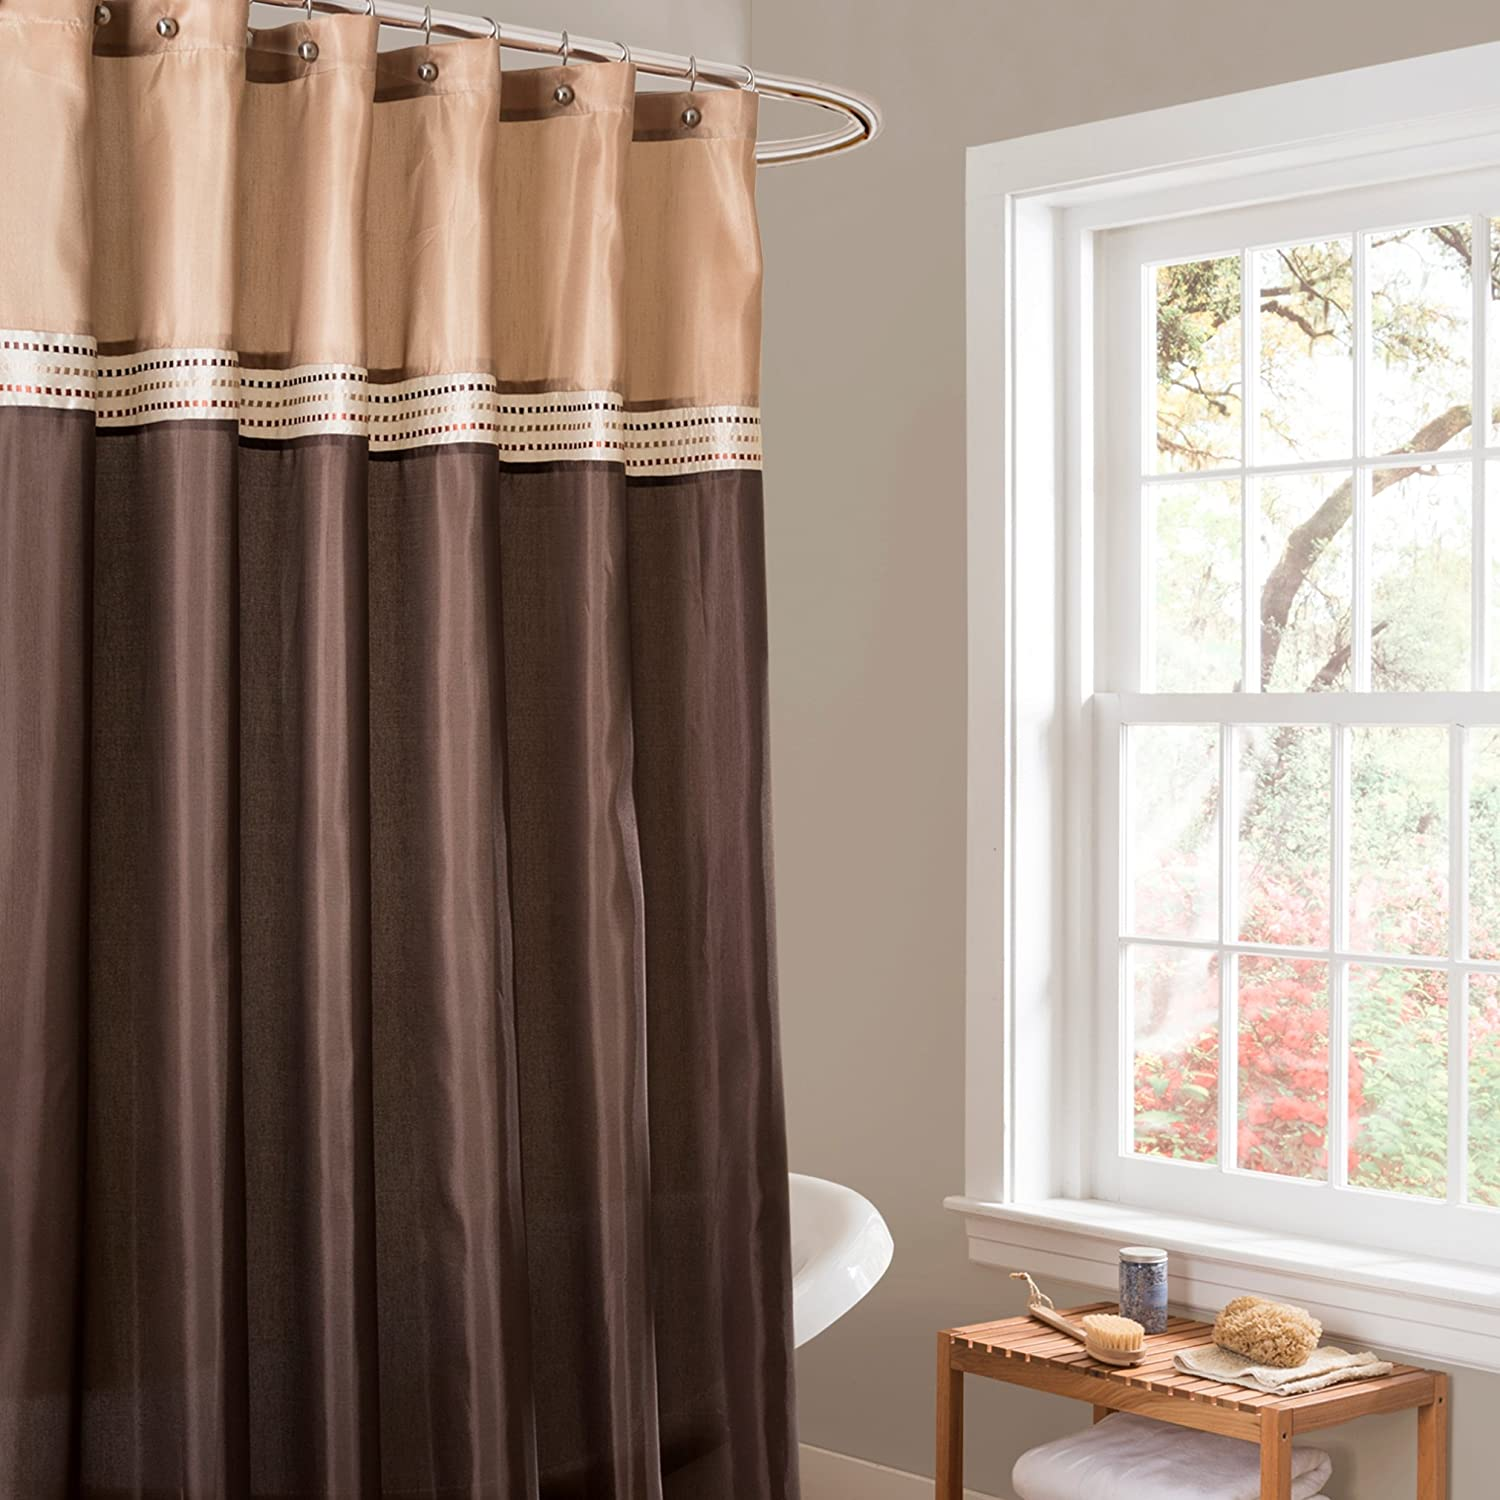 brown and white shower curtain. Amazon com  Lush Decor Terra Shower Curtain 72 by Inch Brown Beige Home Kitchen